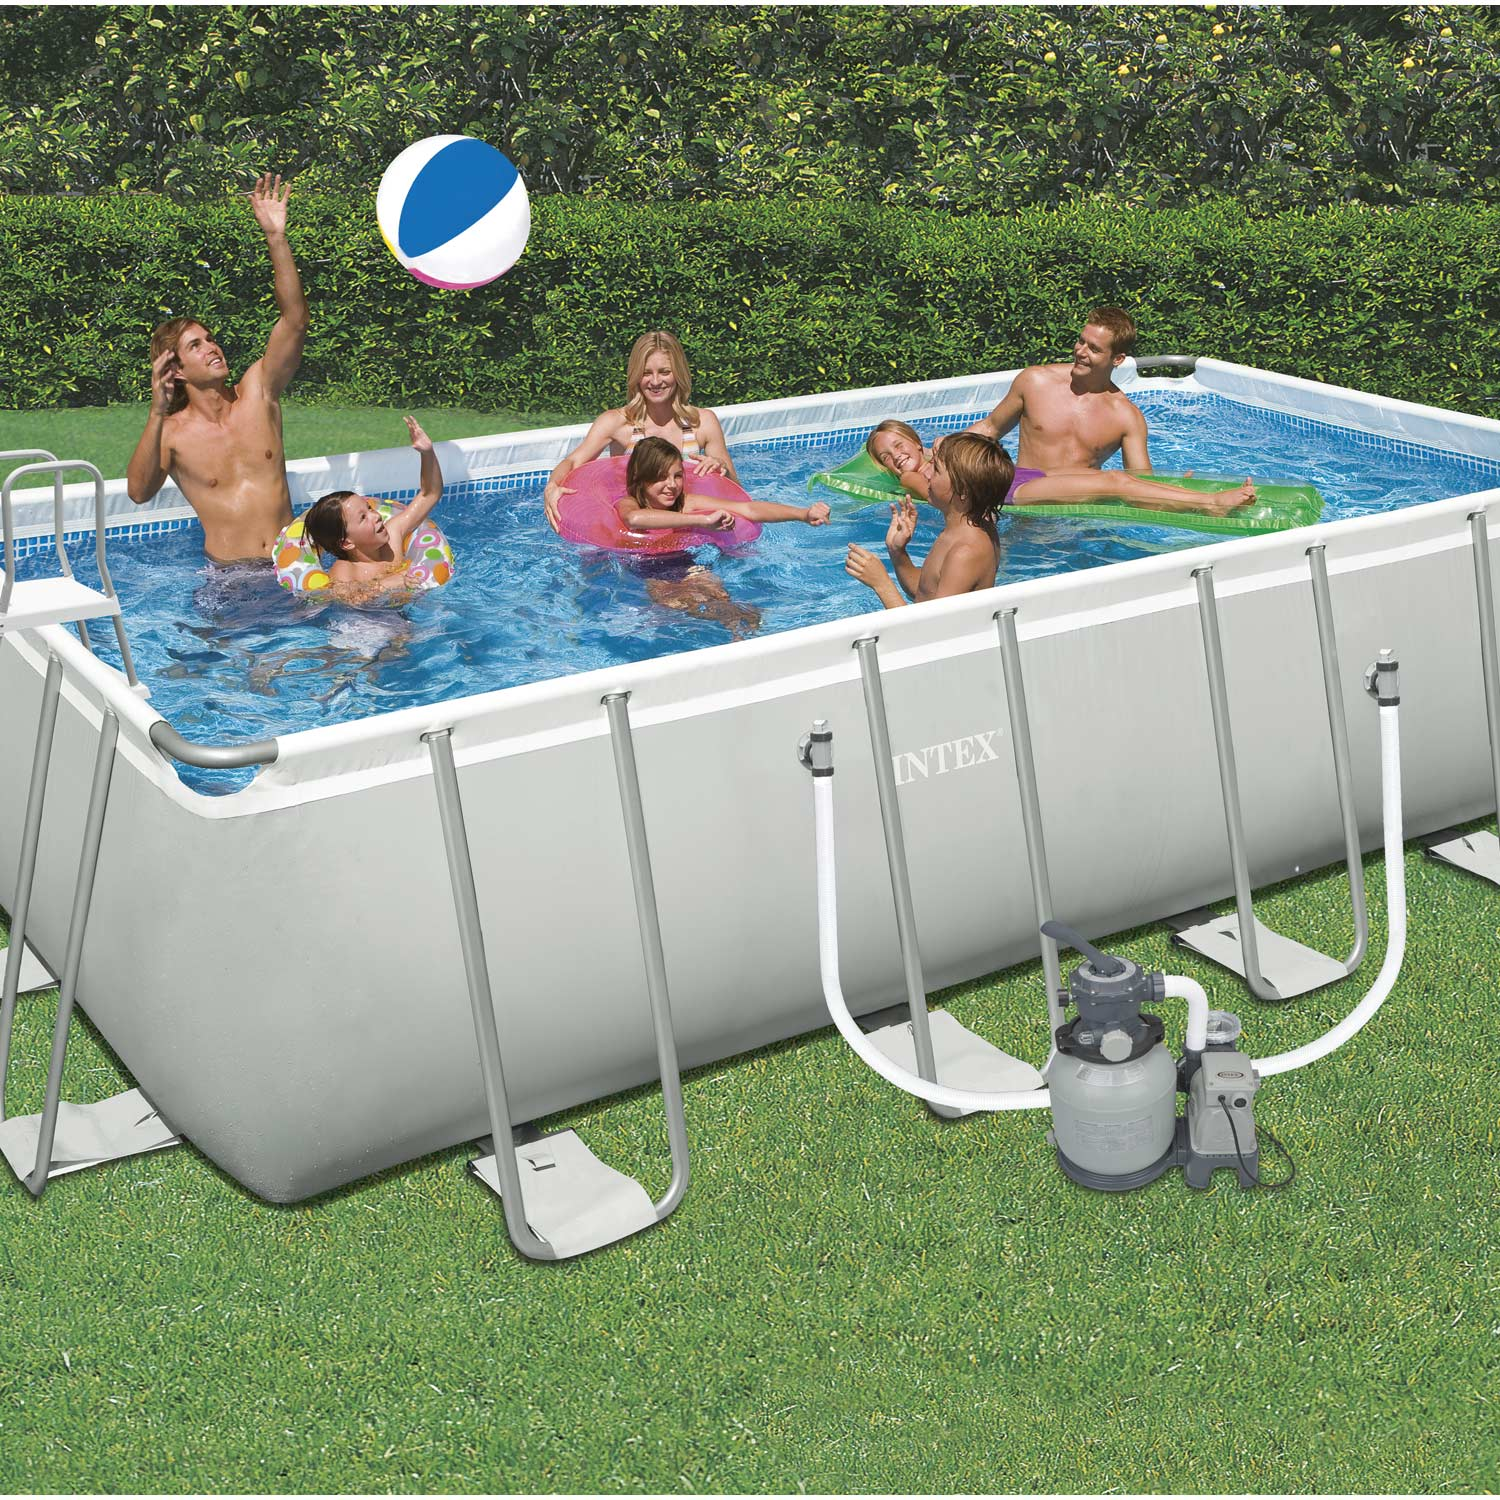 Piscine hors sol autoportante tubulaire intex l x l for Pompe piscine intex